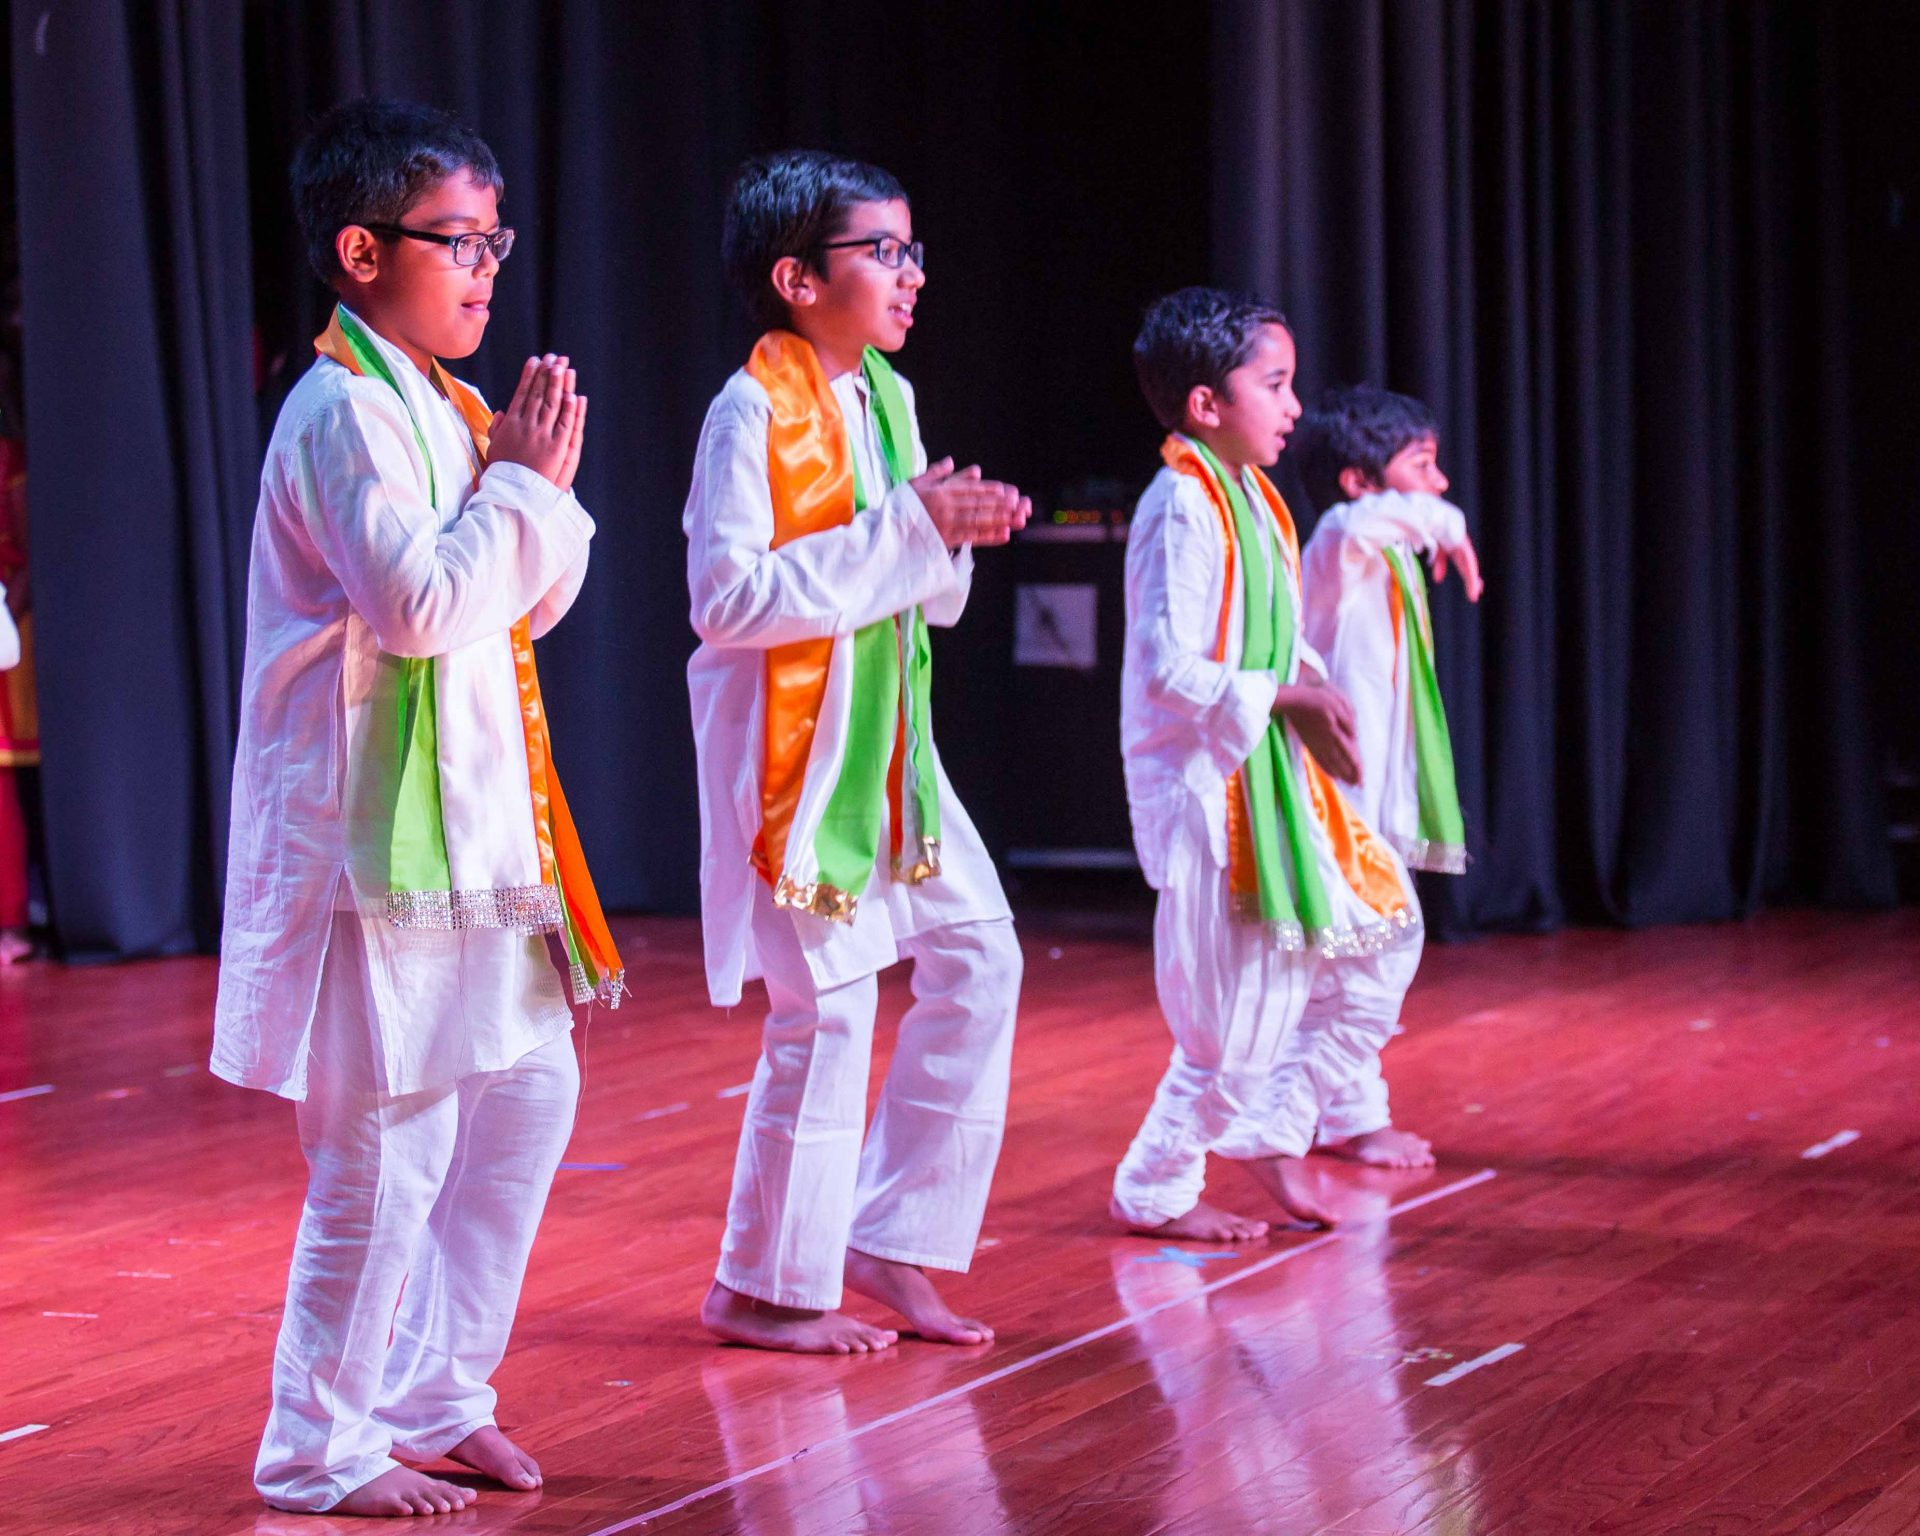 View More: http://welton.pass.us/indiafestknoxville16